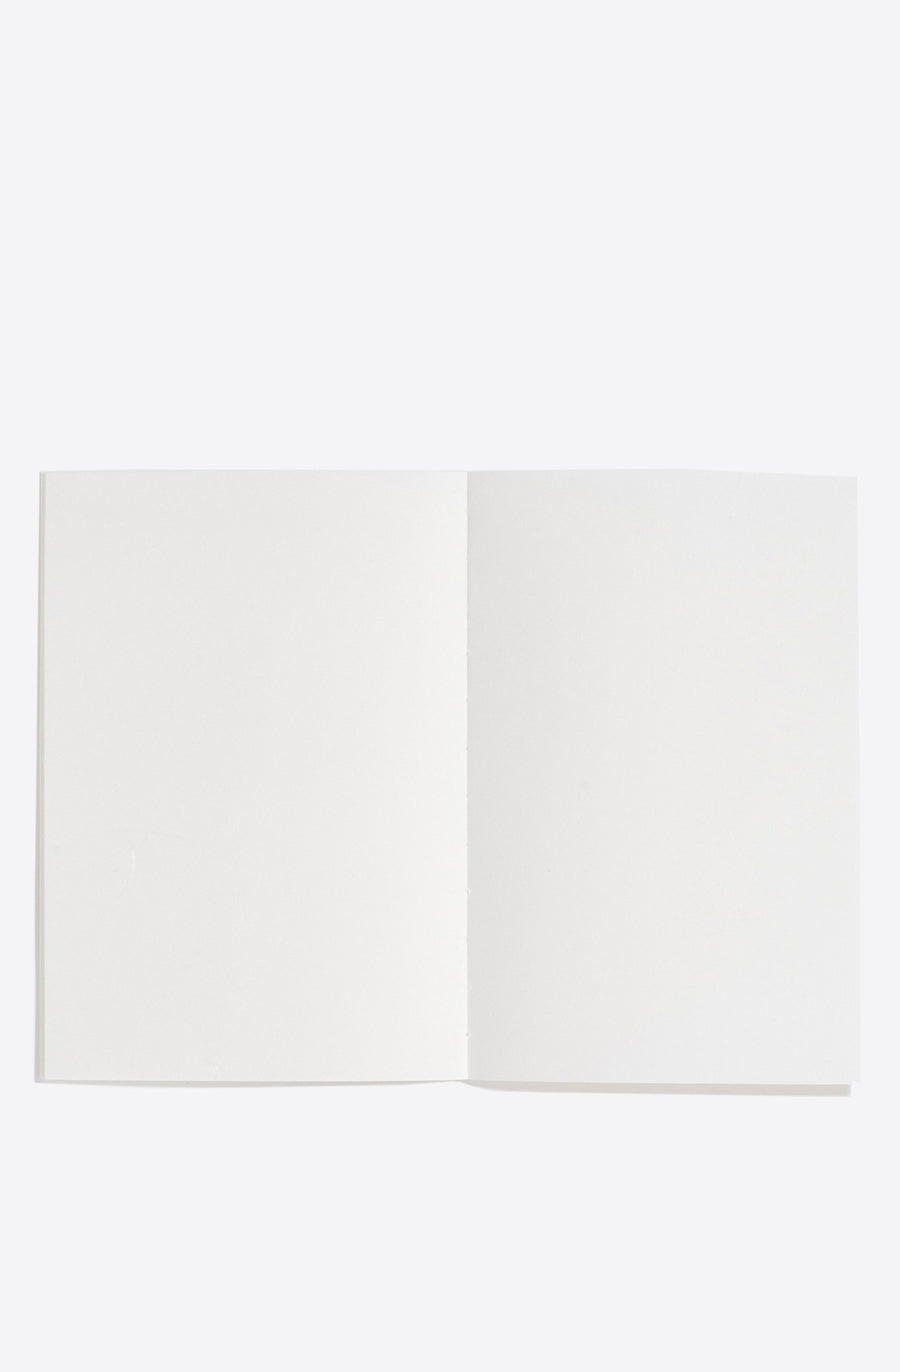 Graphics Square Notebook-square